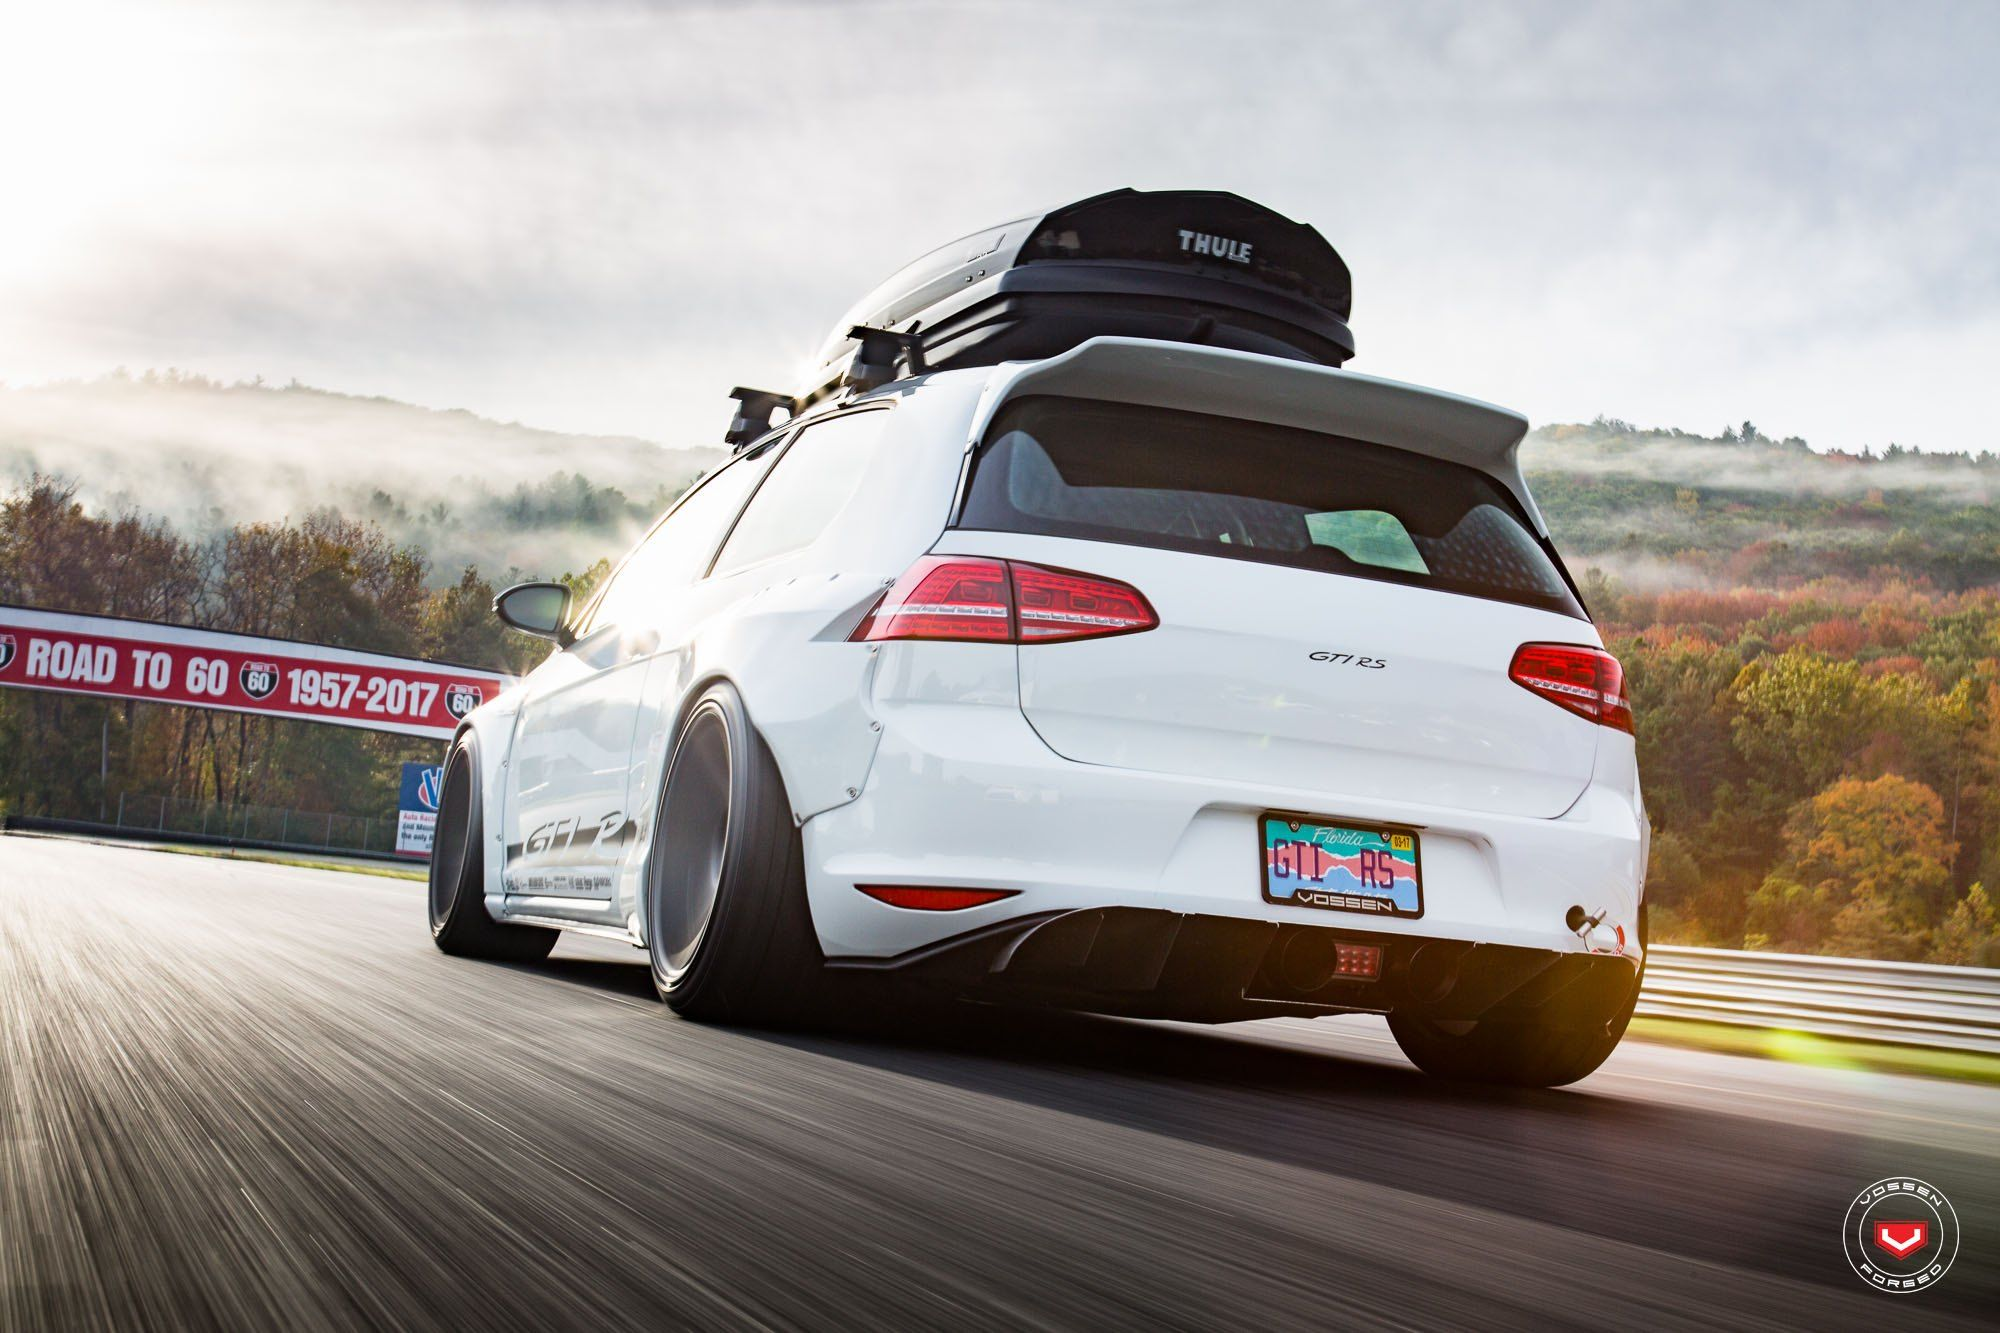 Golf Gti Rs With An Insane Rocket Bunny Wide Body Kit Volkswagen